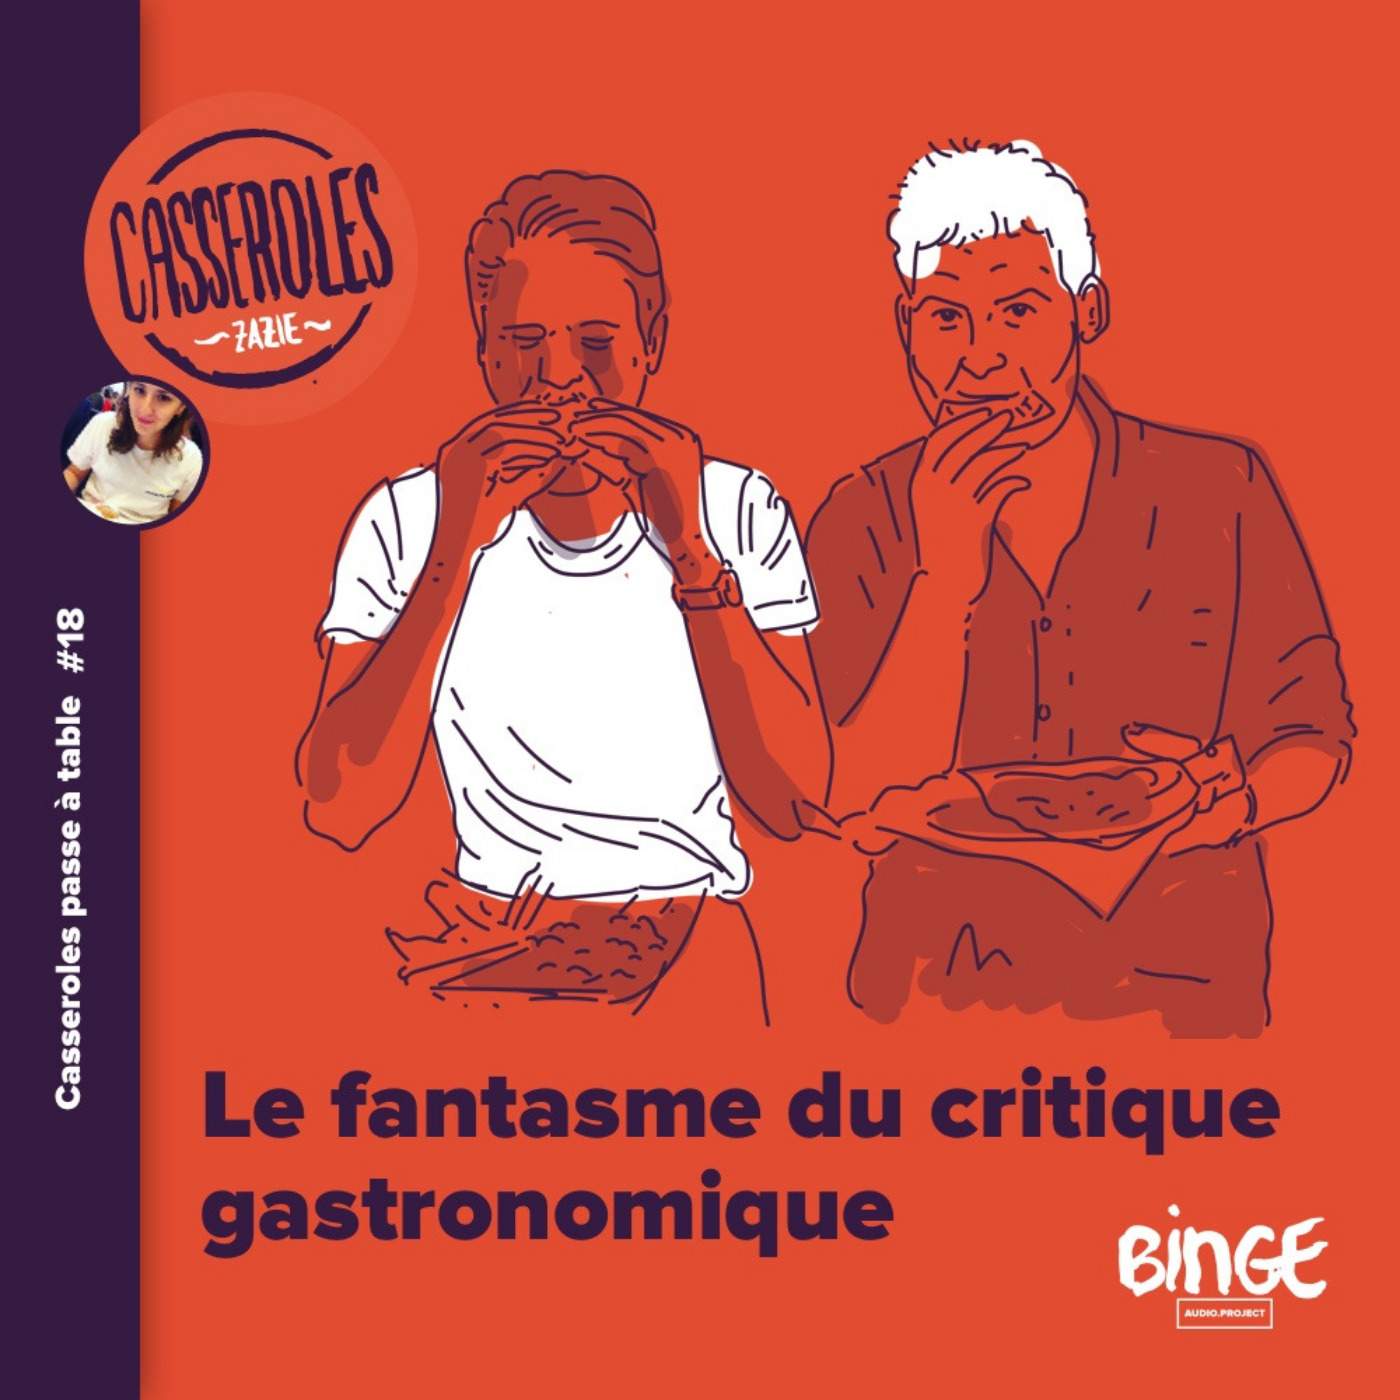 A table - Le fantasme du critique gastronomique